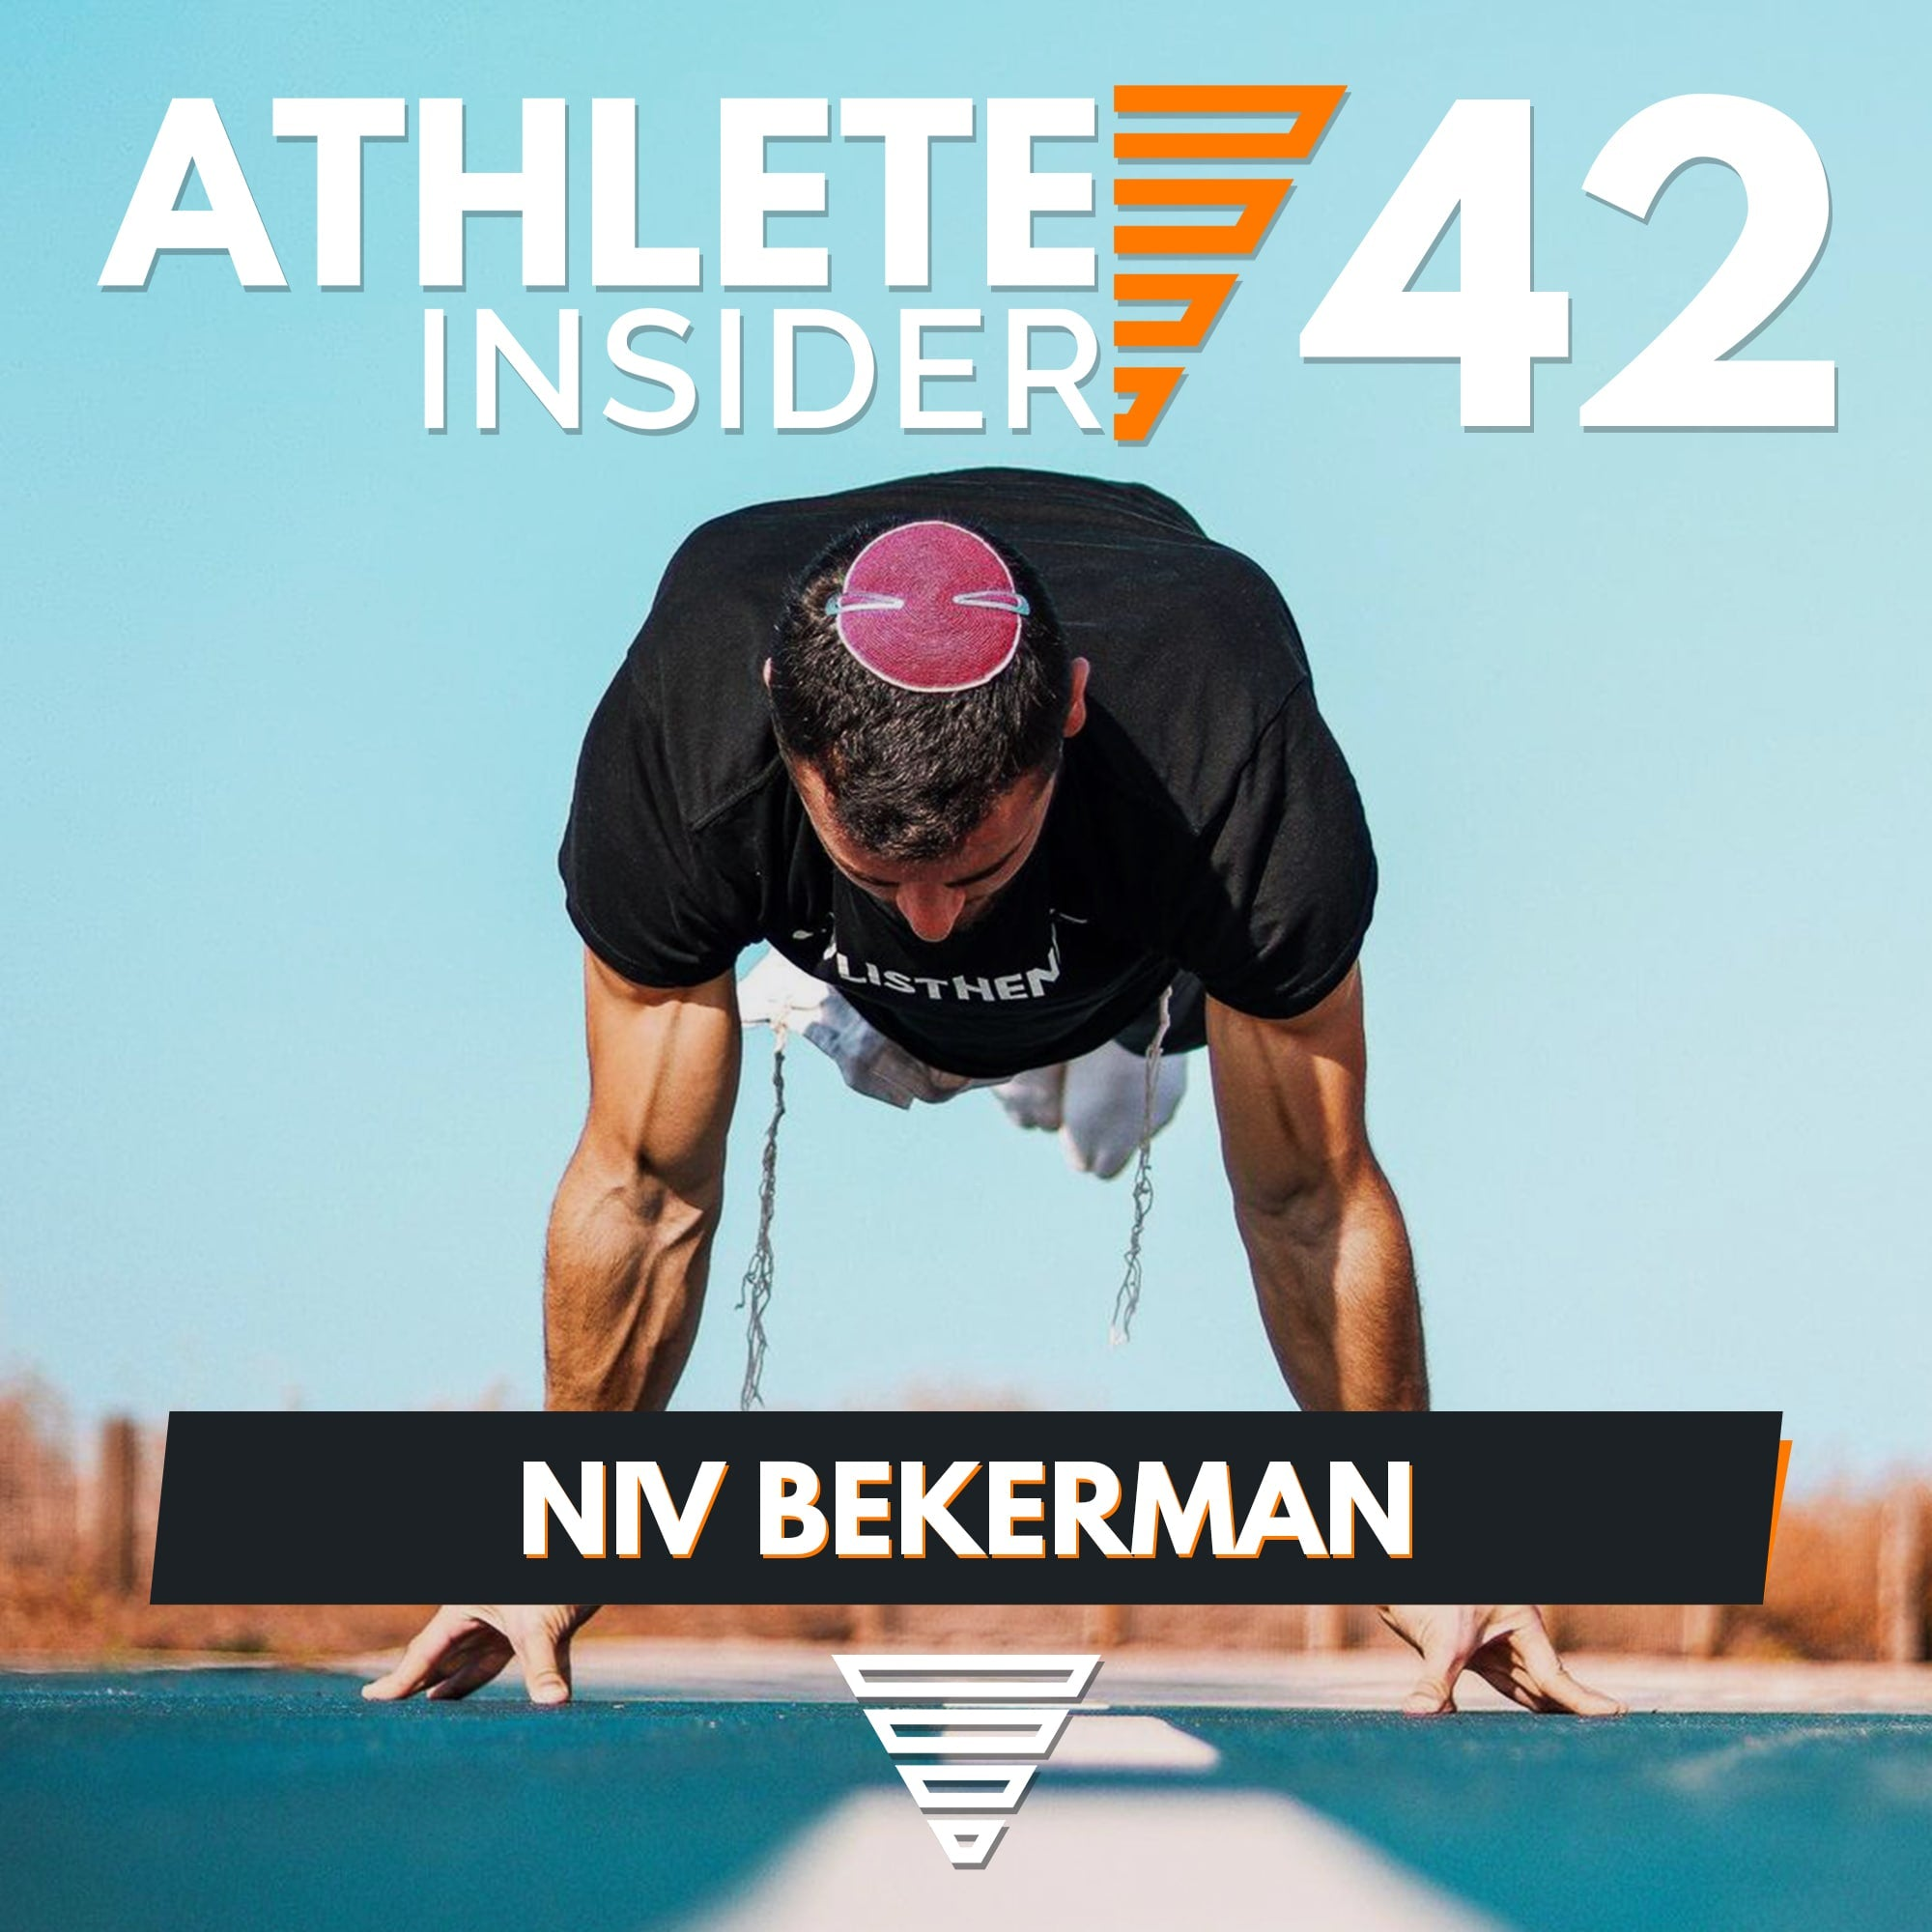 NIV BEKERMAN | Planche, Handstand & Hard Work | Interview | The Athlete Insider Podcast #42